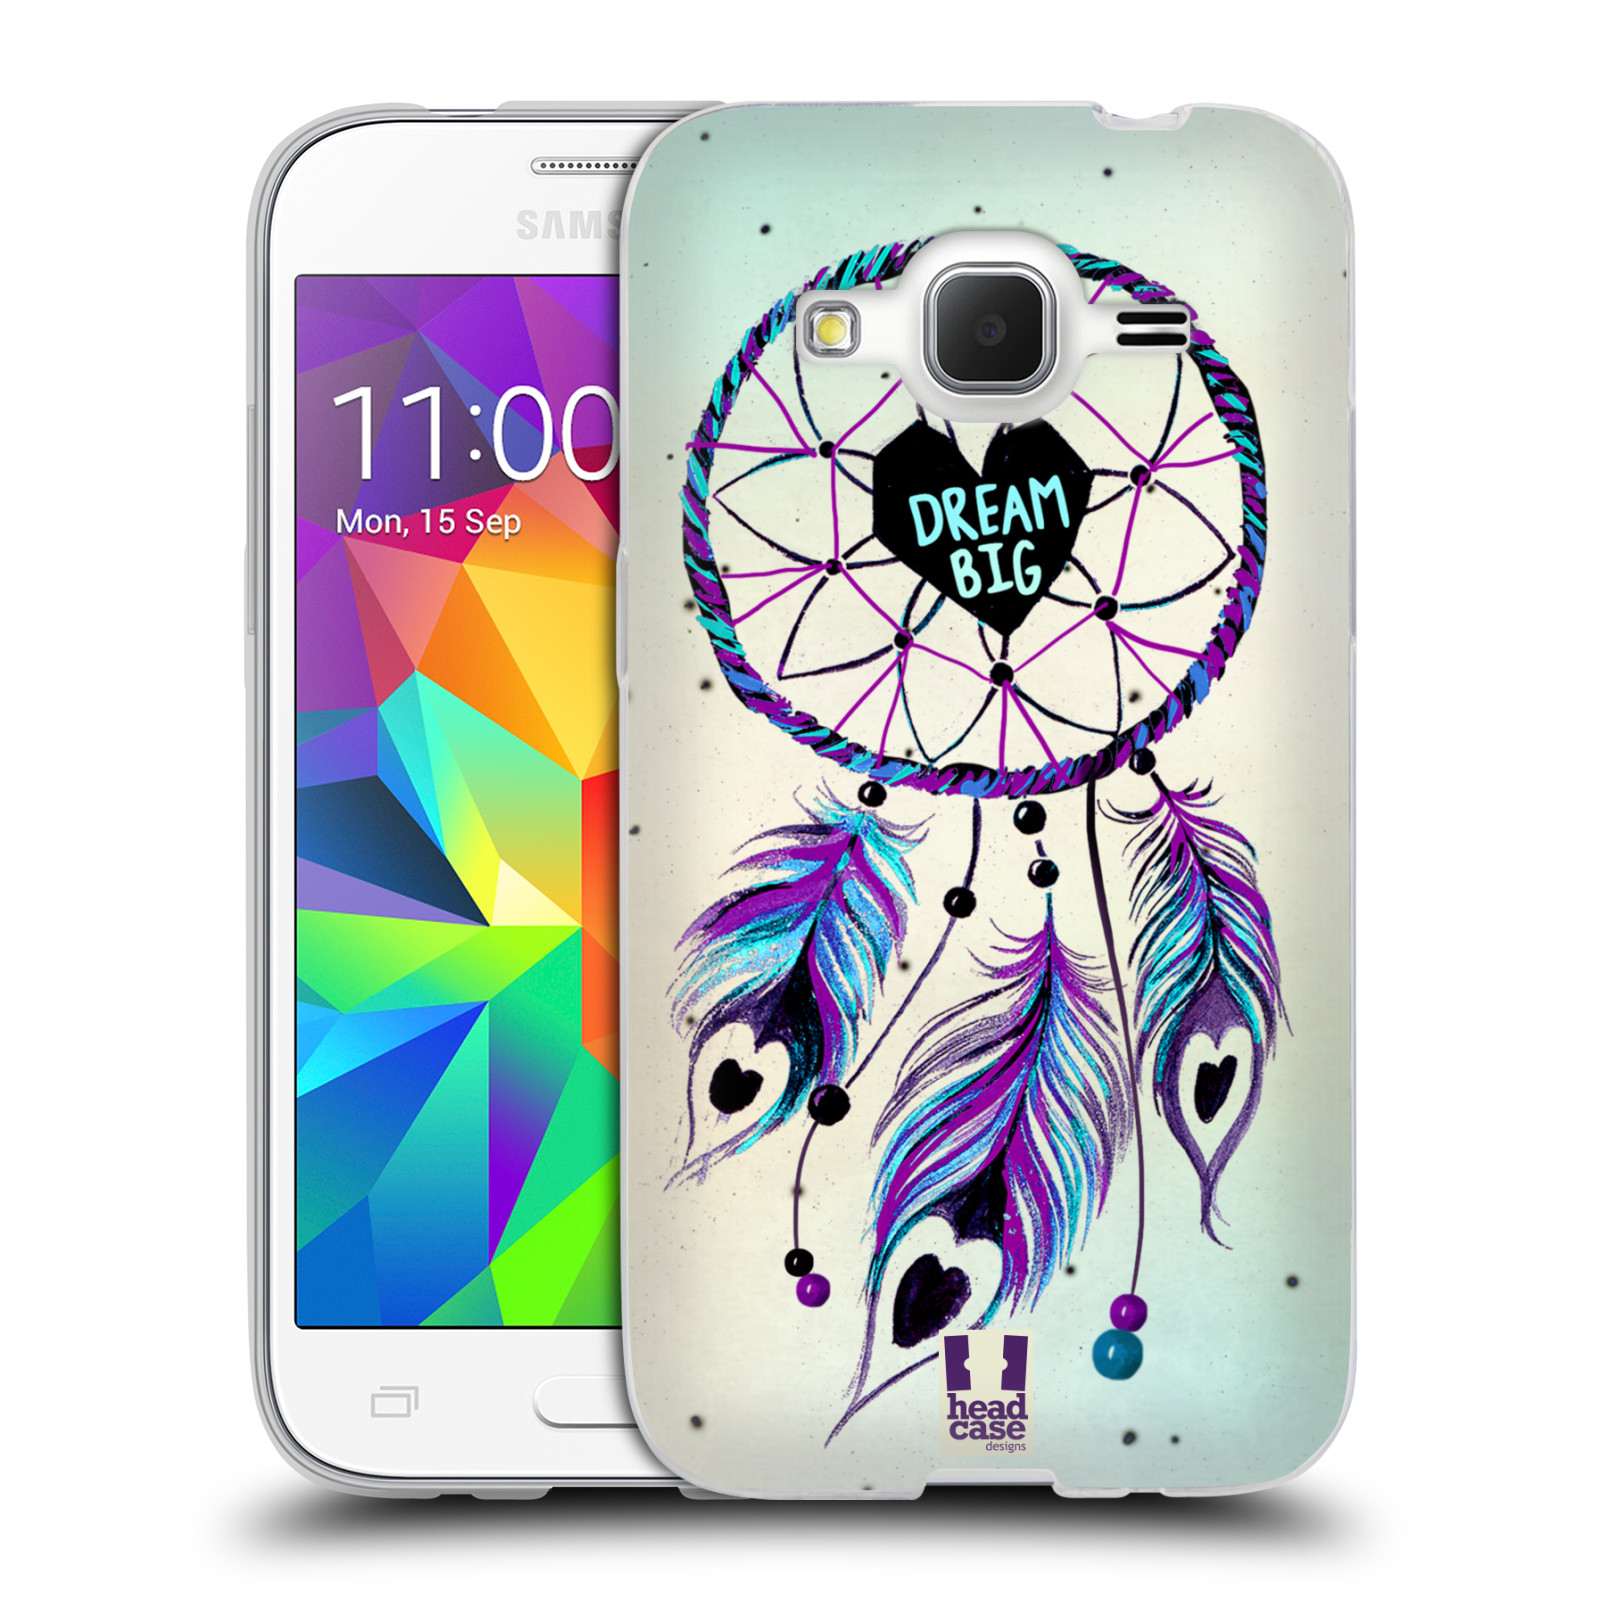 Silikonové pouzdro na mobil Samsung Galaxy Core Prime VE HEAD CASE Lapač Assorted Dream Big Srdce